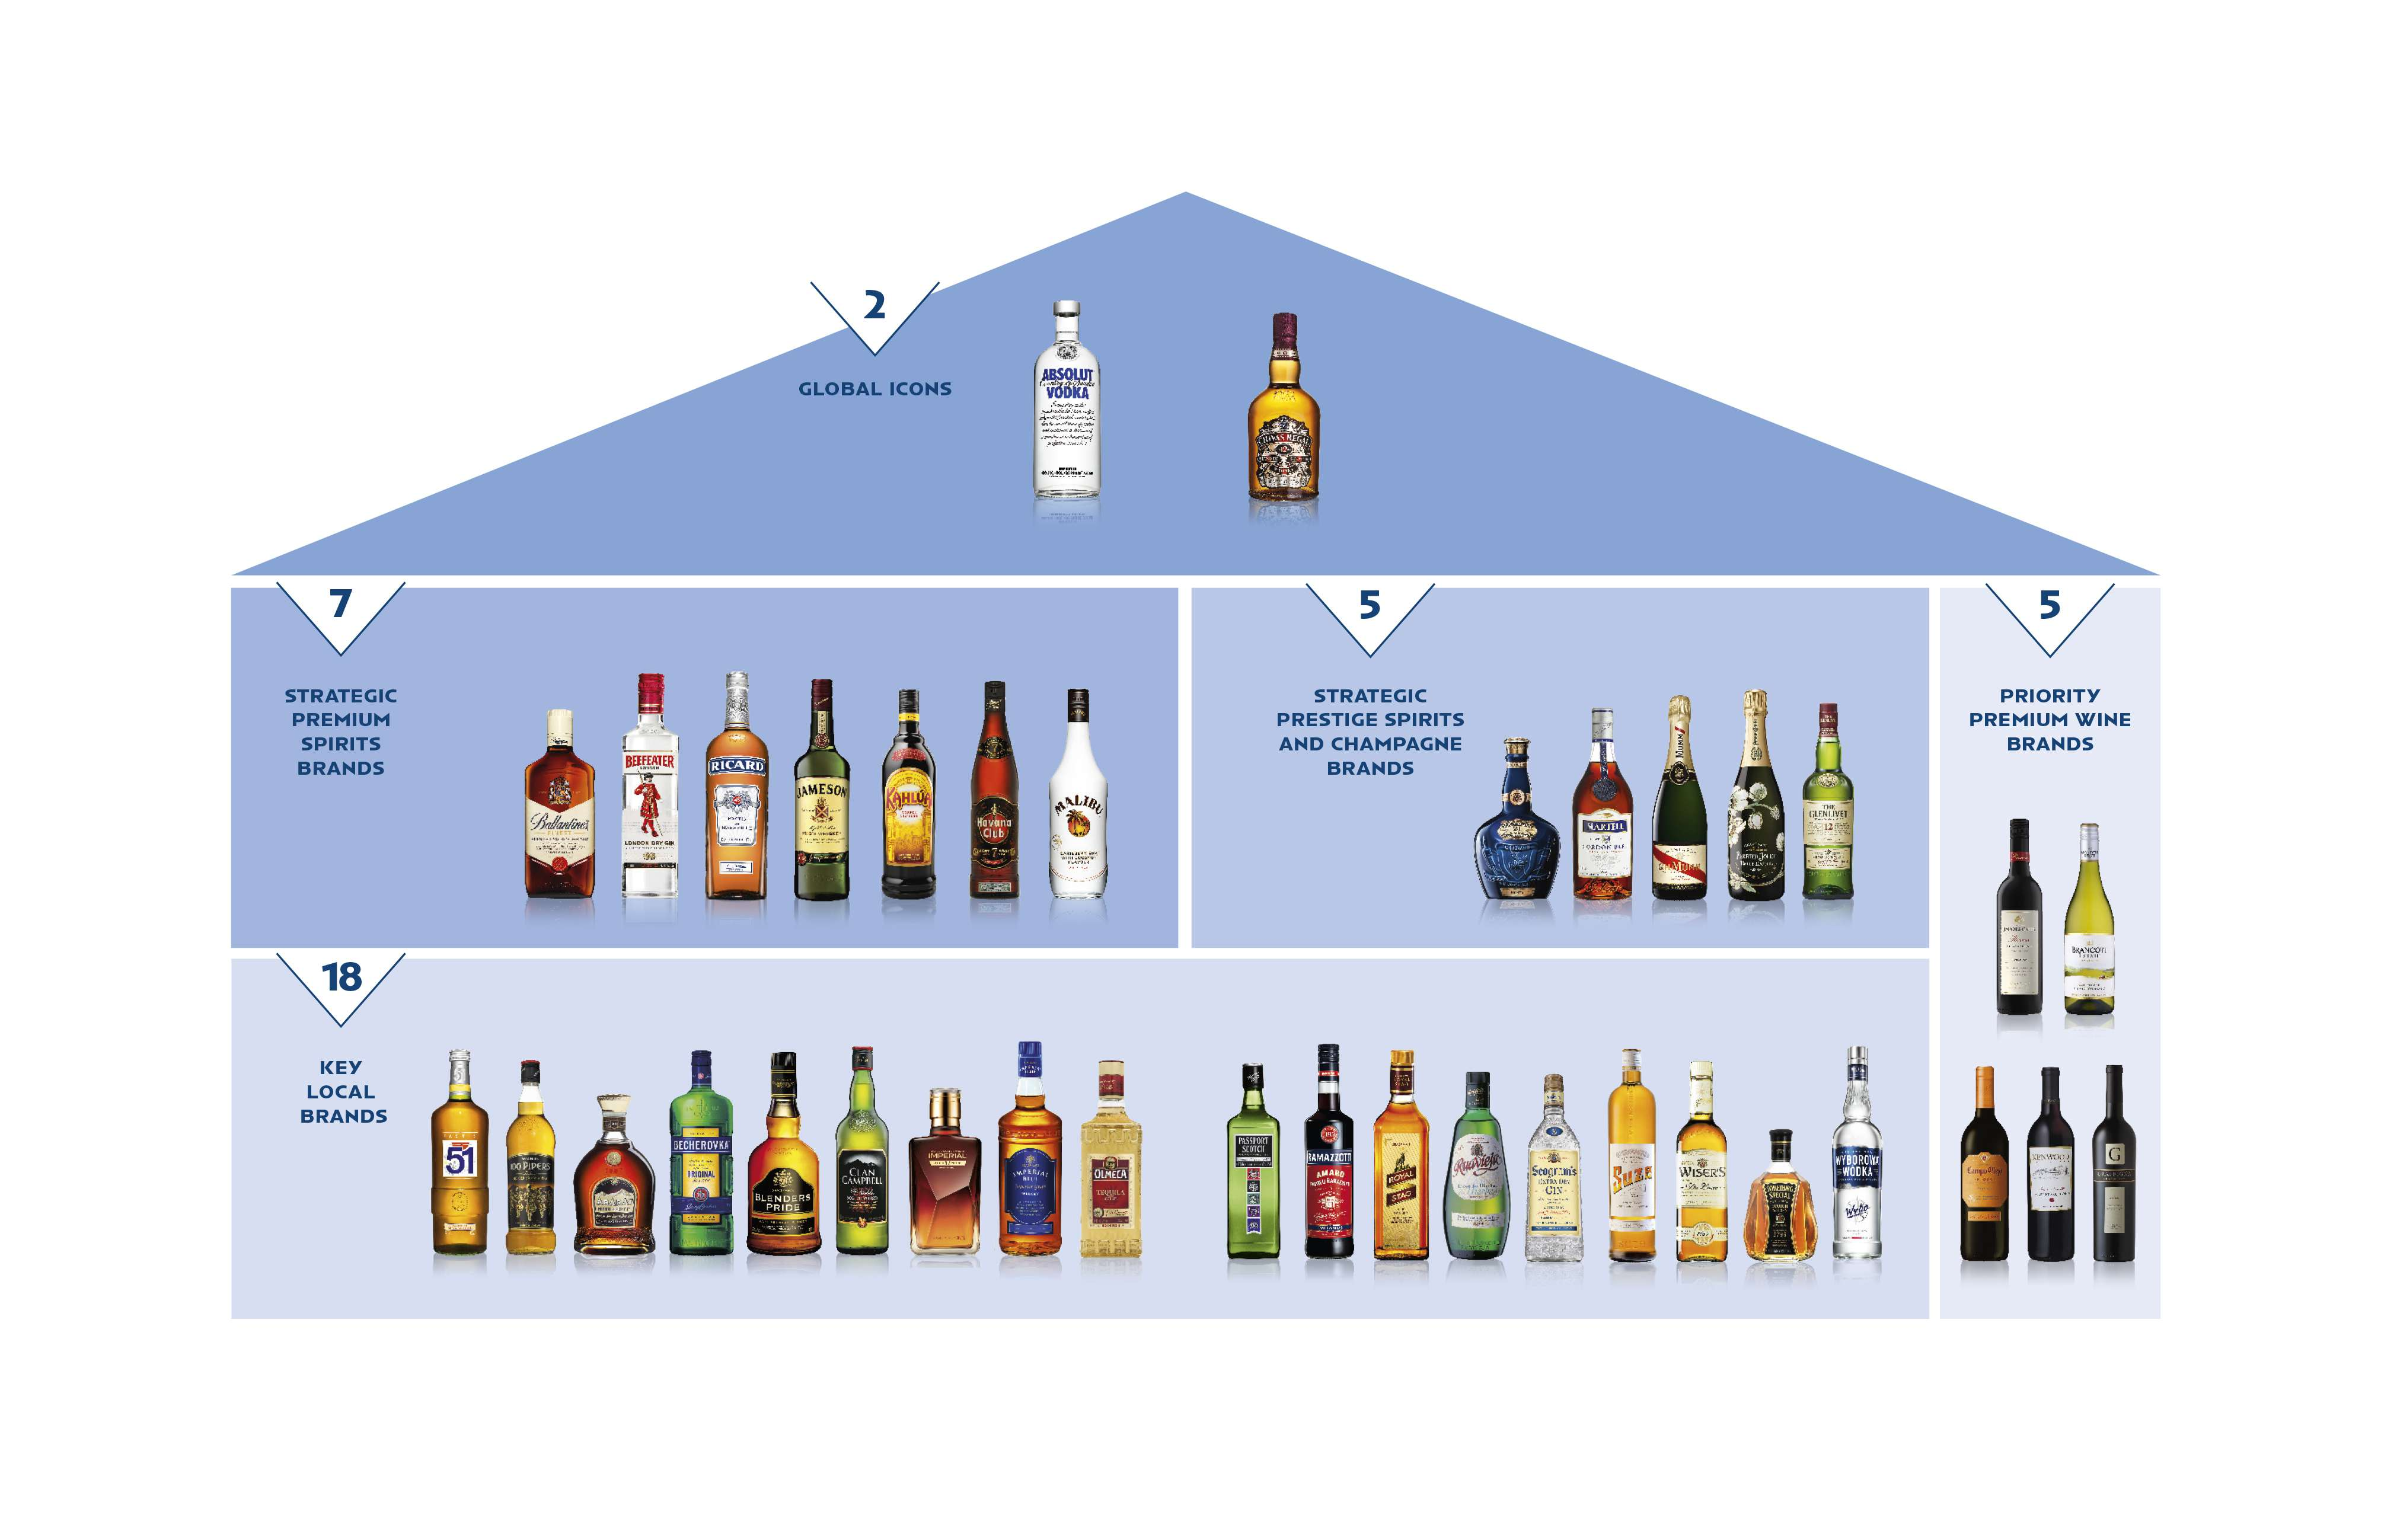 Pernod ricard group pernod ricard czech republic for Maison brand